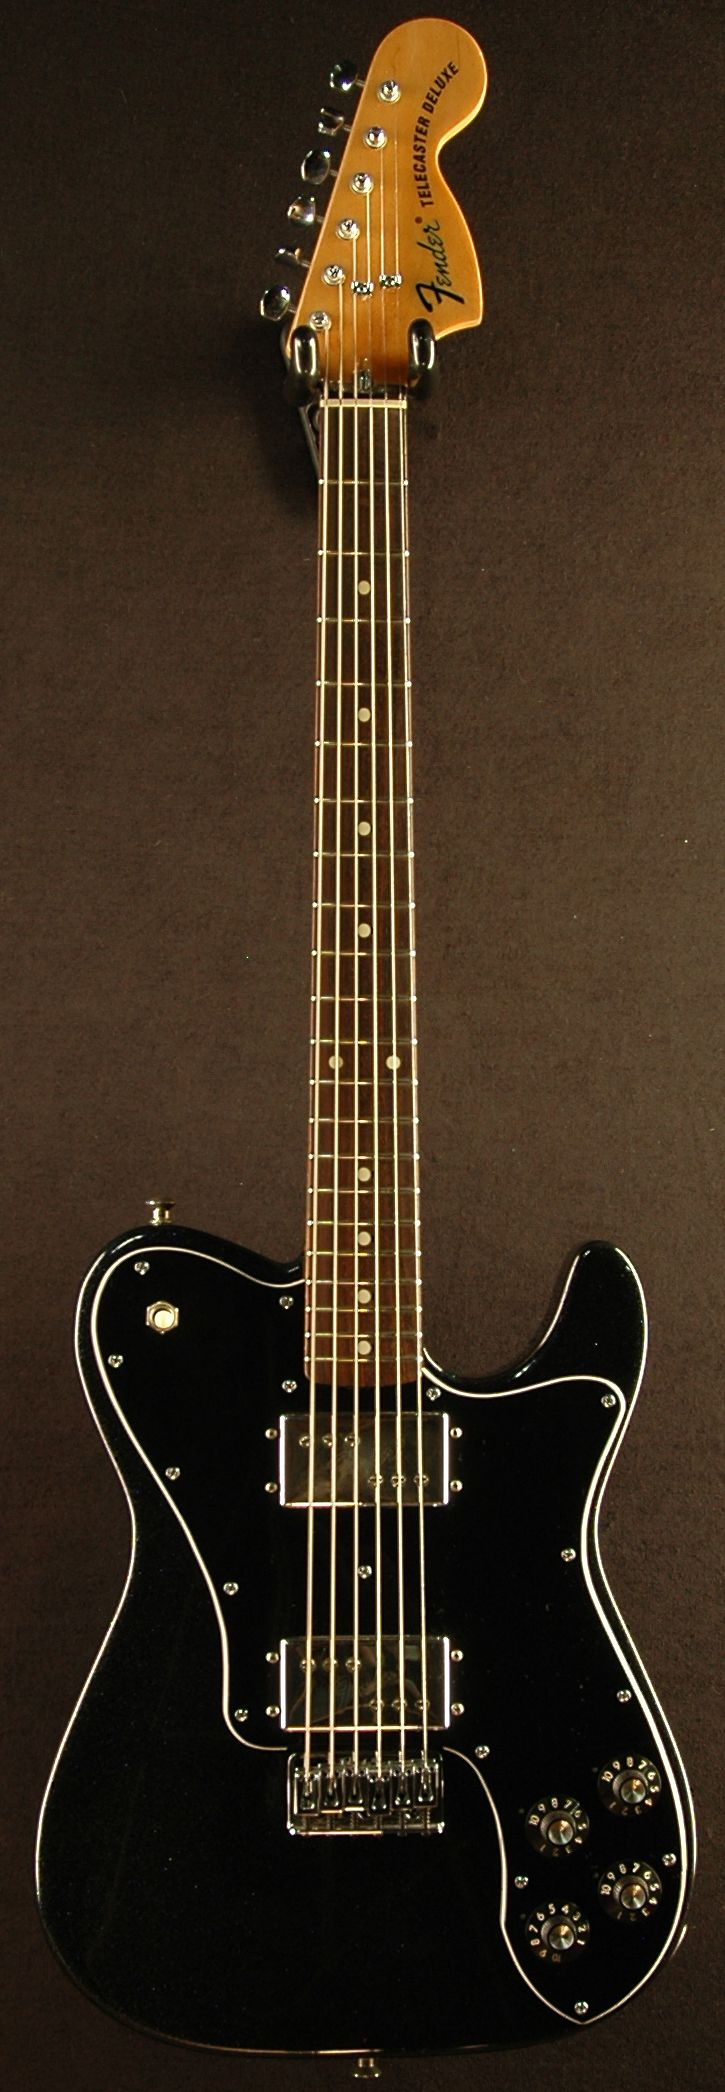 1979 Fender Telecaster Deluxe What I D Give To Have This